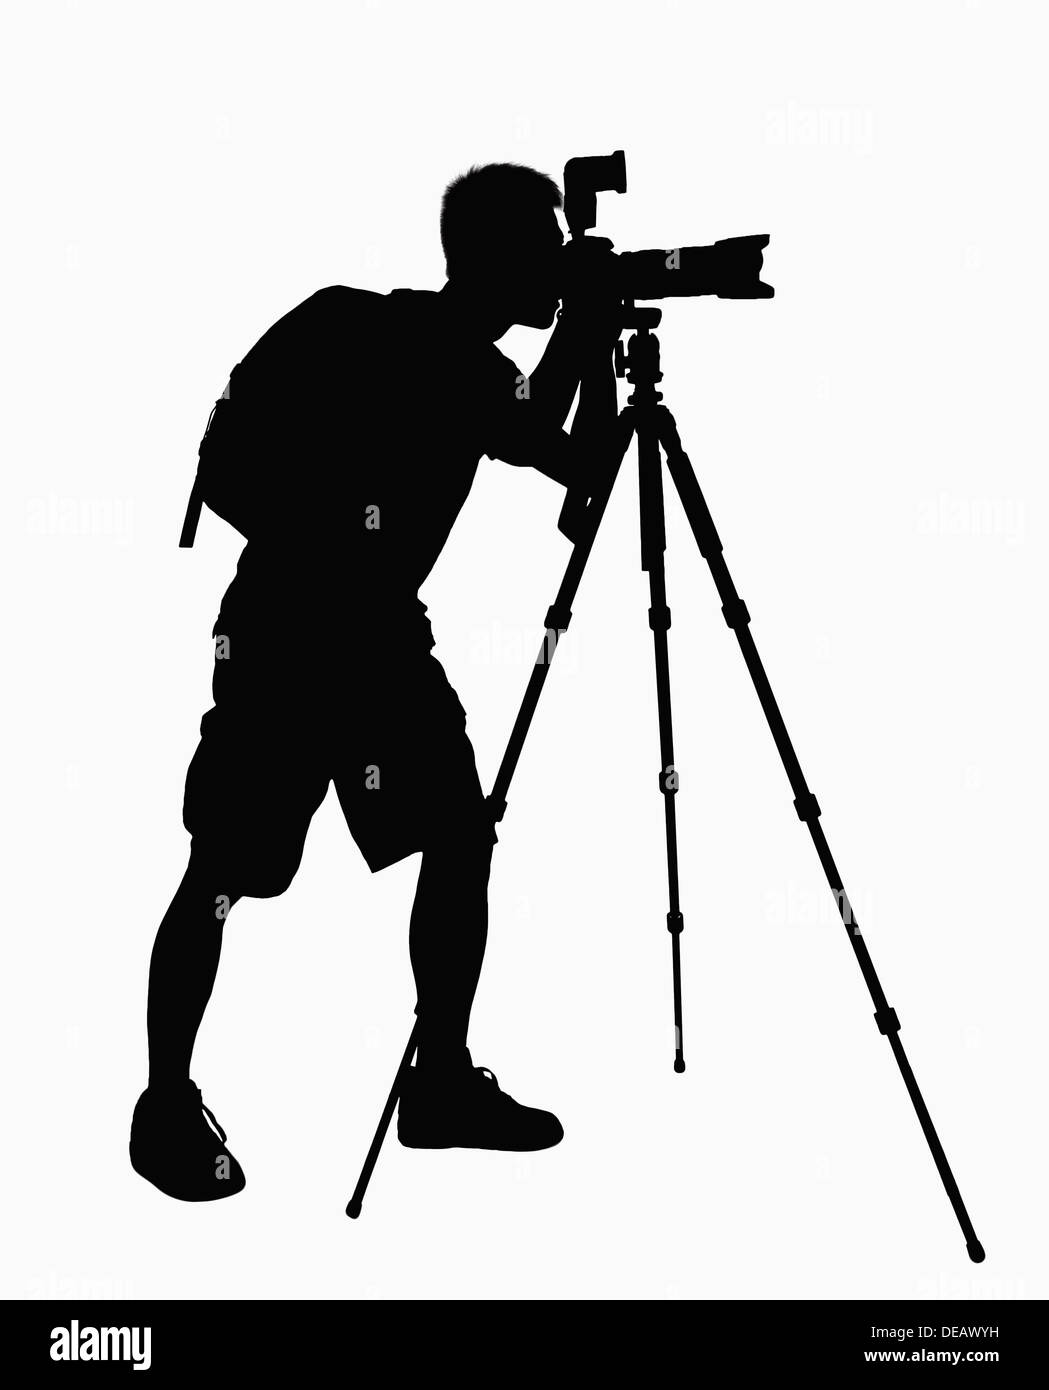 Silhouette of man taking pictures with camera on tripod #0: silhouette of man taking pictures with camera on tripod DEAWYH